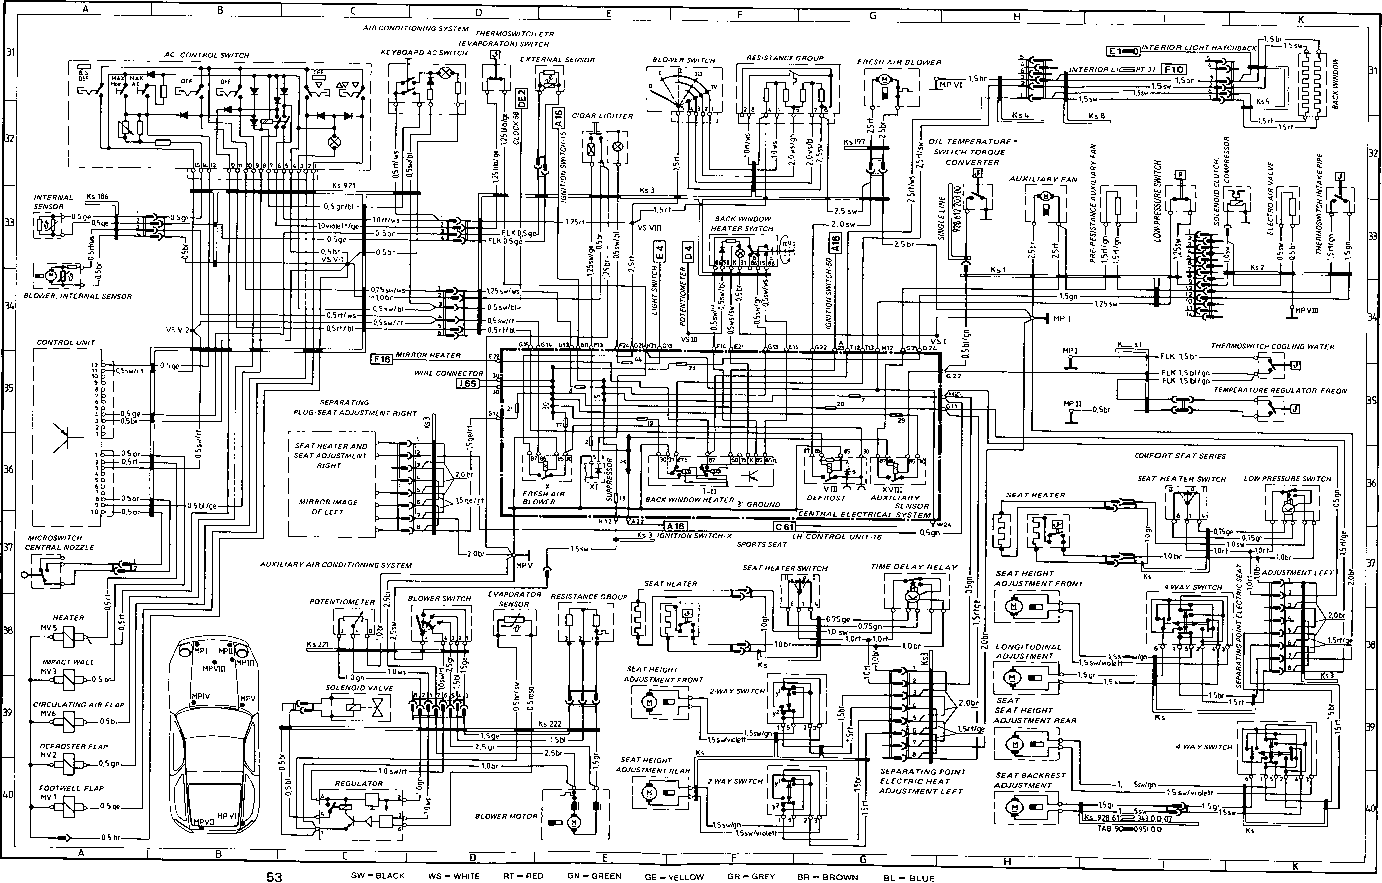 2101_17_37 porsche 928 johtokaavio porsche 911 wiring diagram porsche 911 thermostat diagram wiring 1980 porsche 911 wiring diagram at edmiracle.co